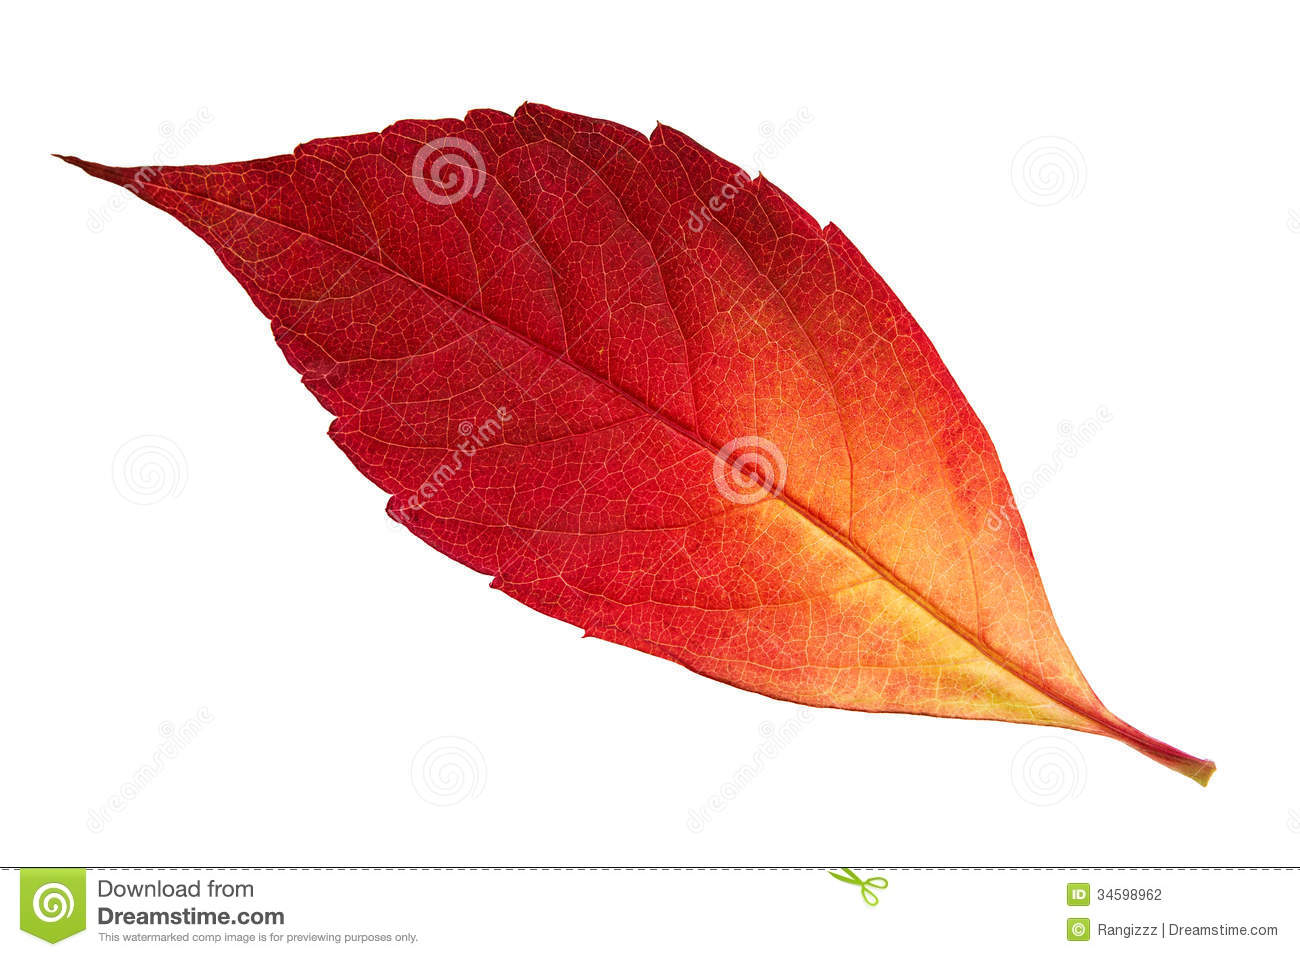 Feuille rouge d 39 automne photographie stock image 34598962 - Arbre feuille rouge automne ...